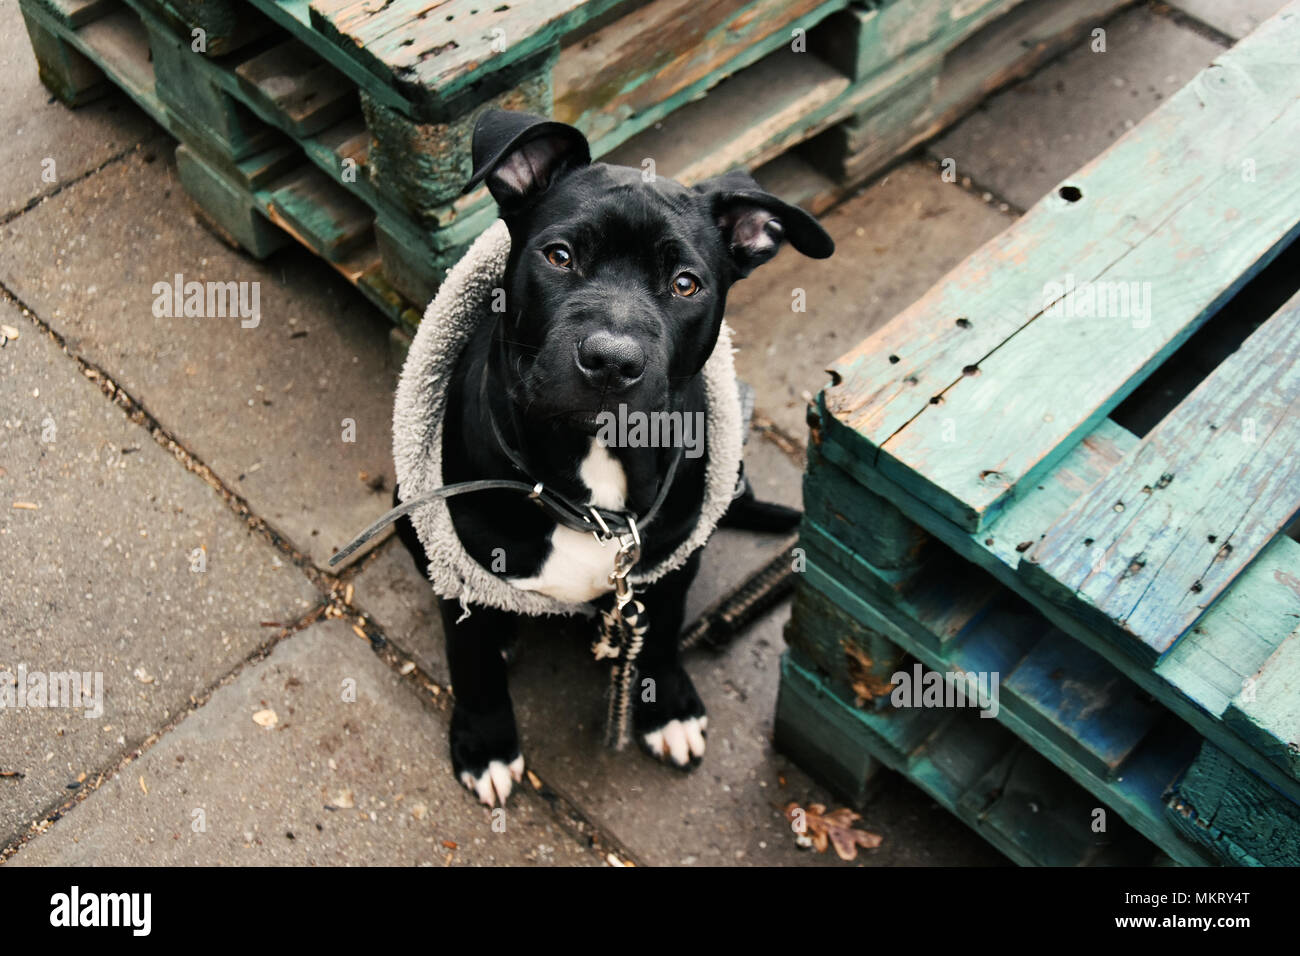 Portrait of a three-month old little black pit bull dog - Stock Image